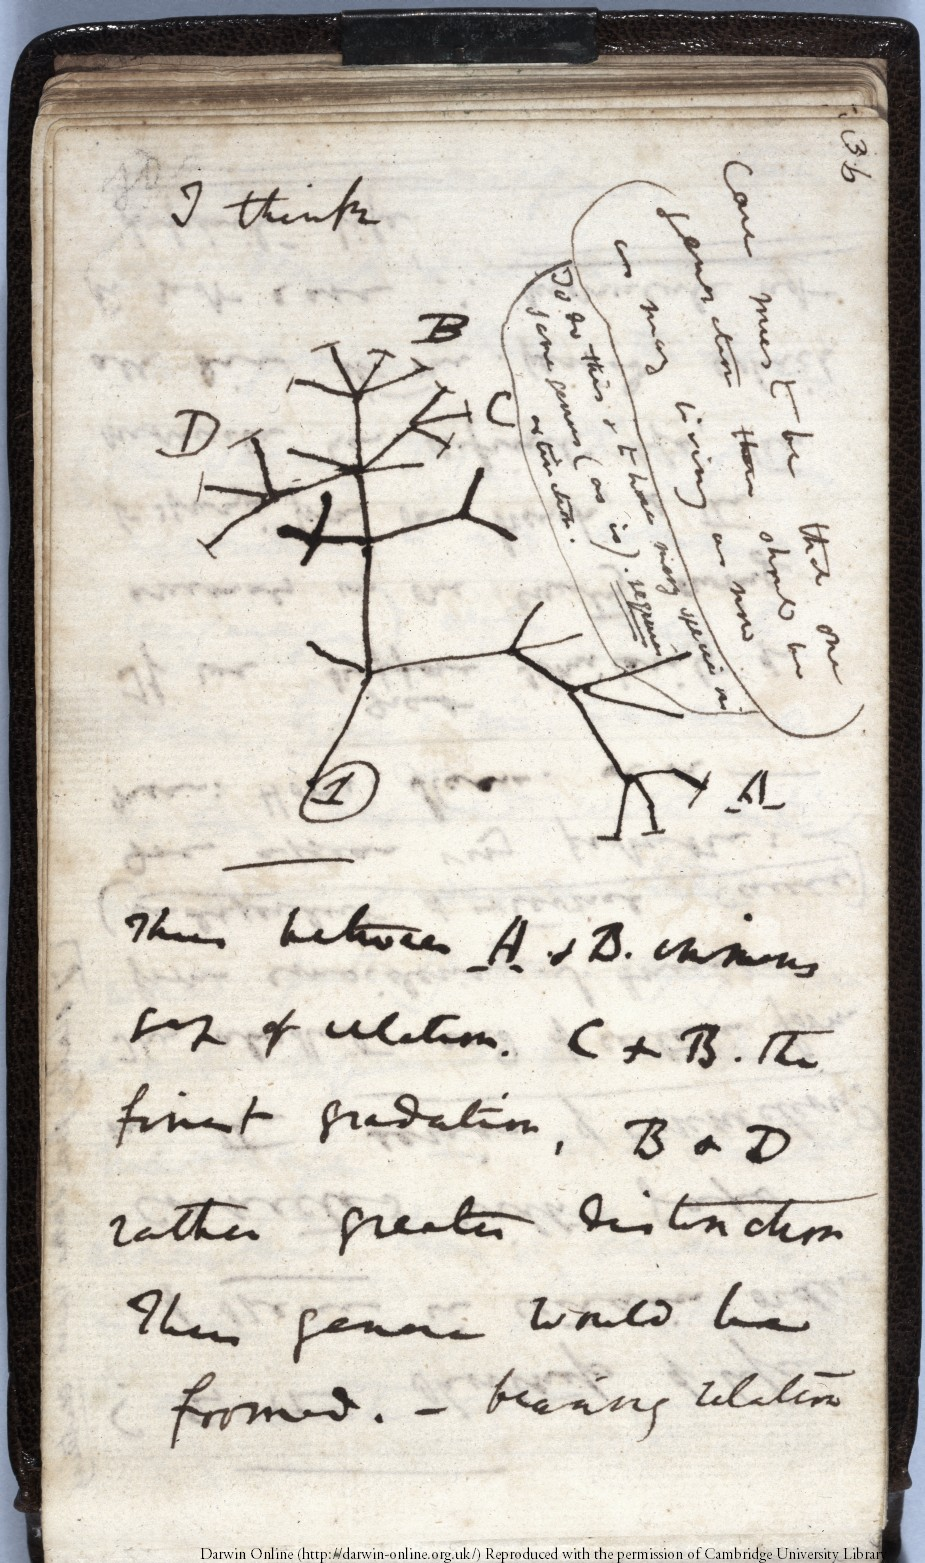 DarwinArchive_1837_NotebookB_CUL-DAR121.-_038.jpg